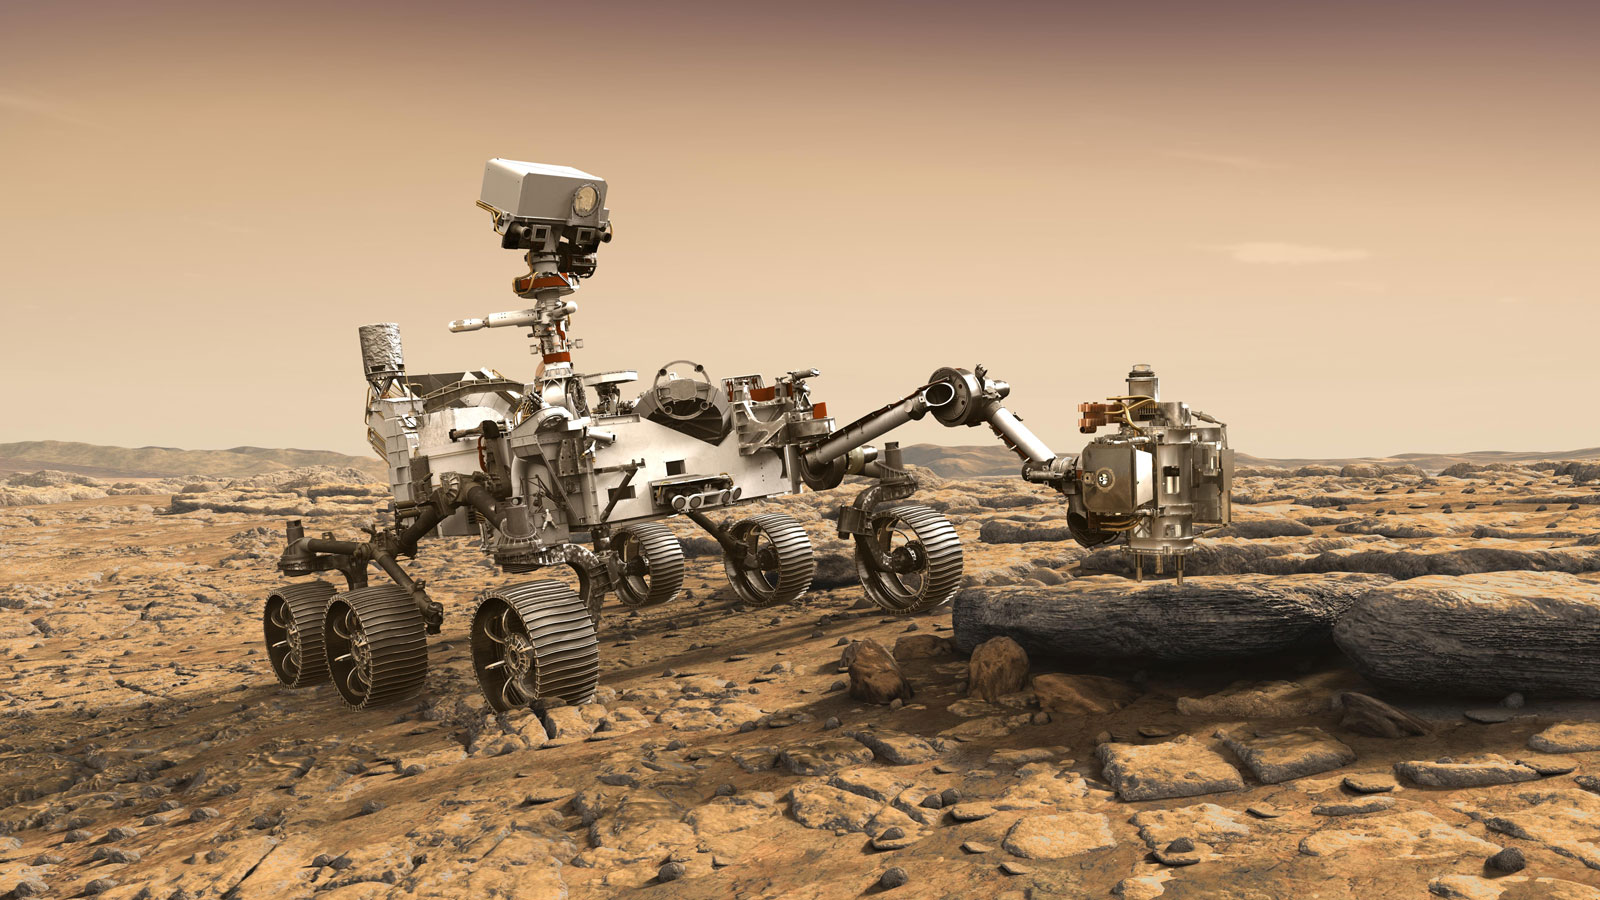 slide 2 - This artist's rendition depicts NASA's Mars 2020 rover studying a Mars rock outrcrop.